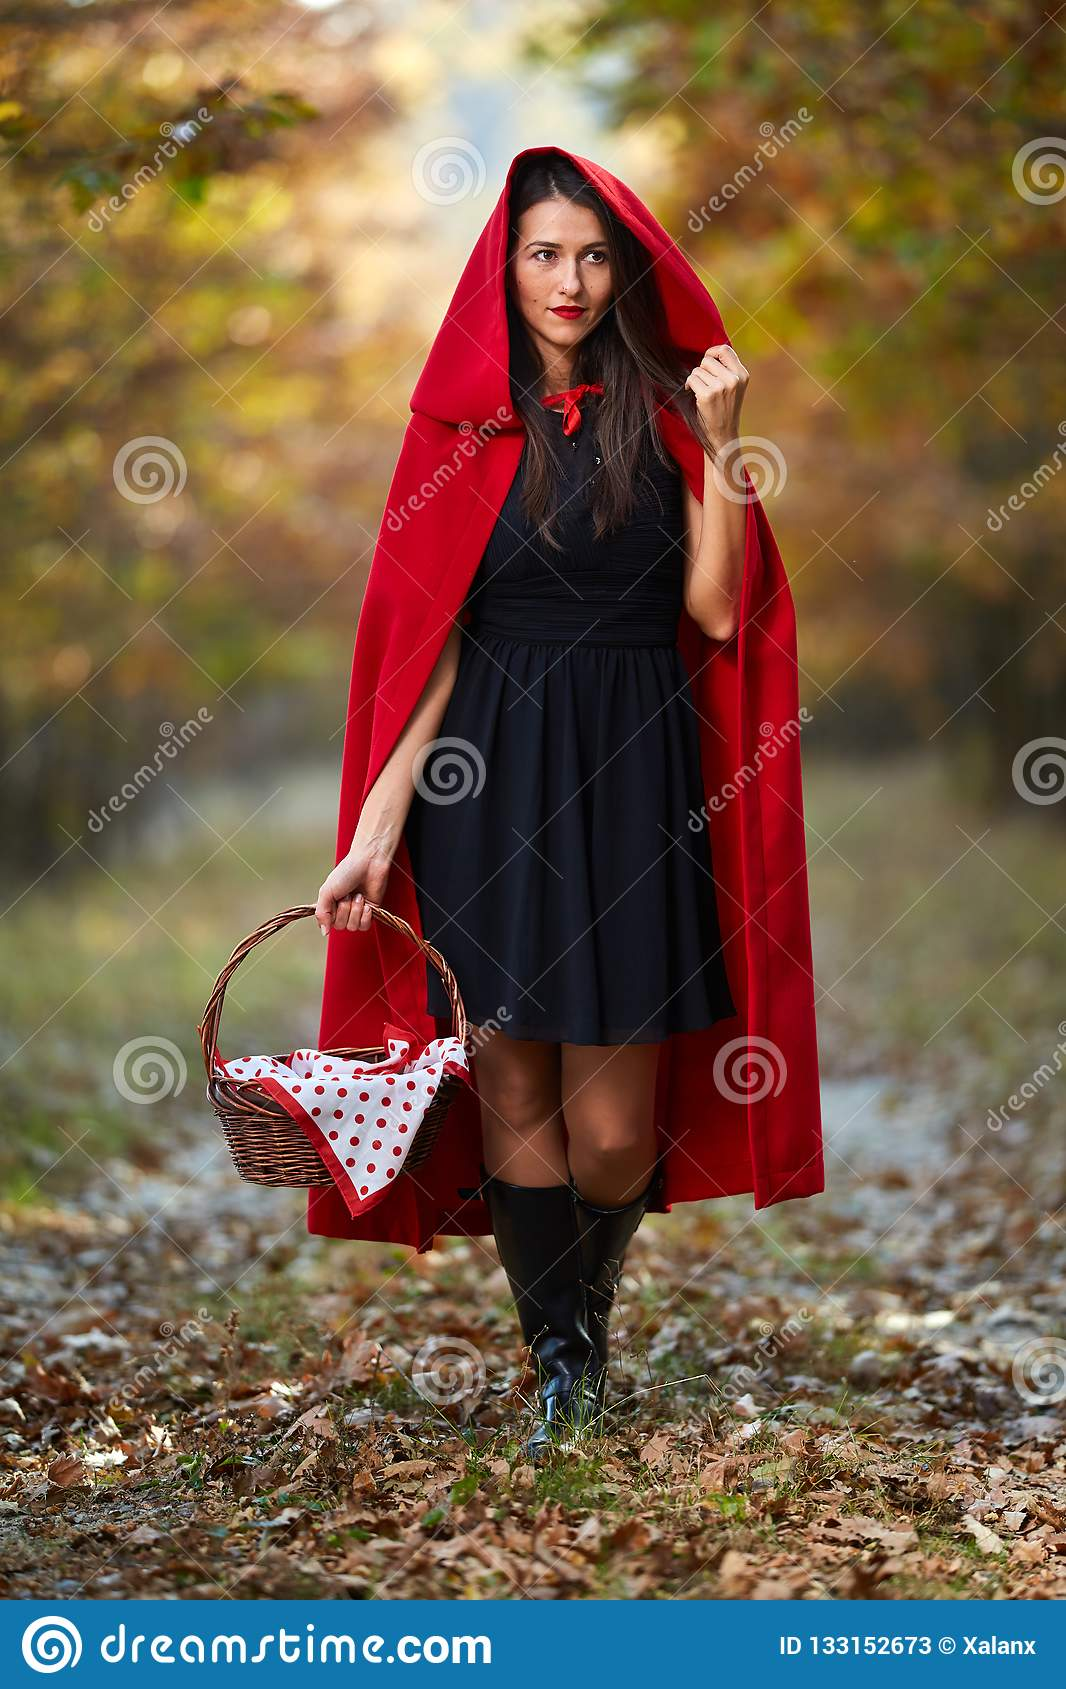 Red Riding Hood Cosplay In The Forest Stock Image - Image ...